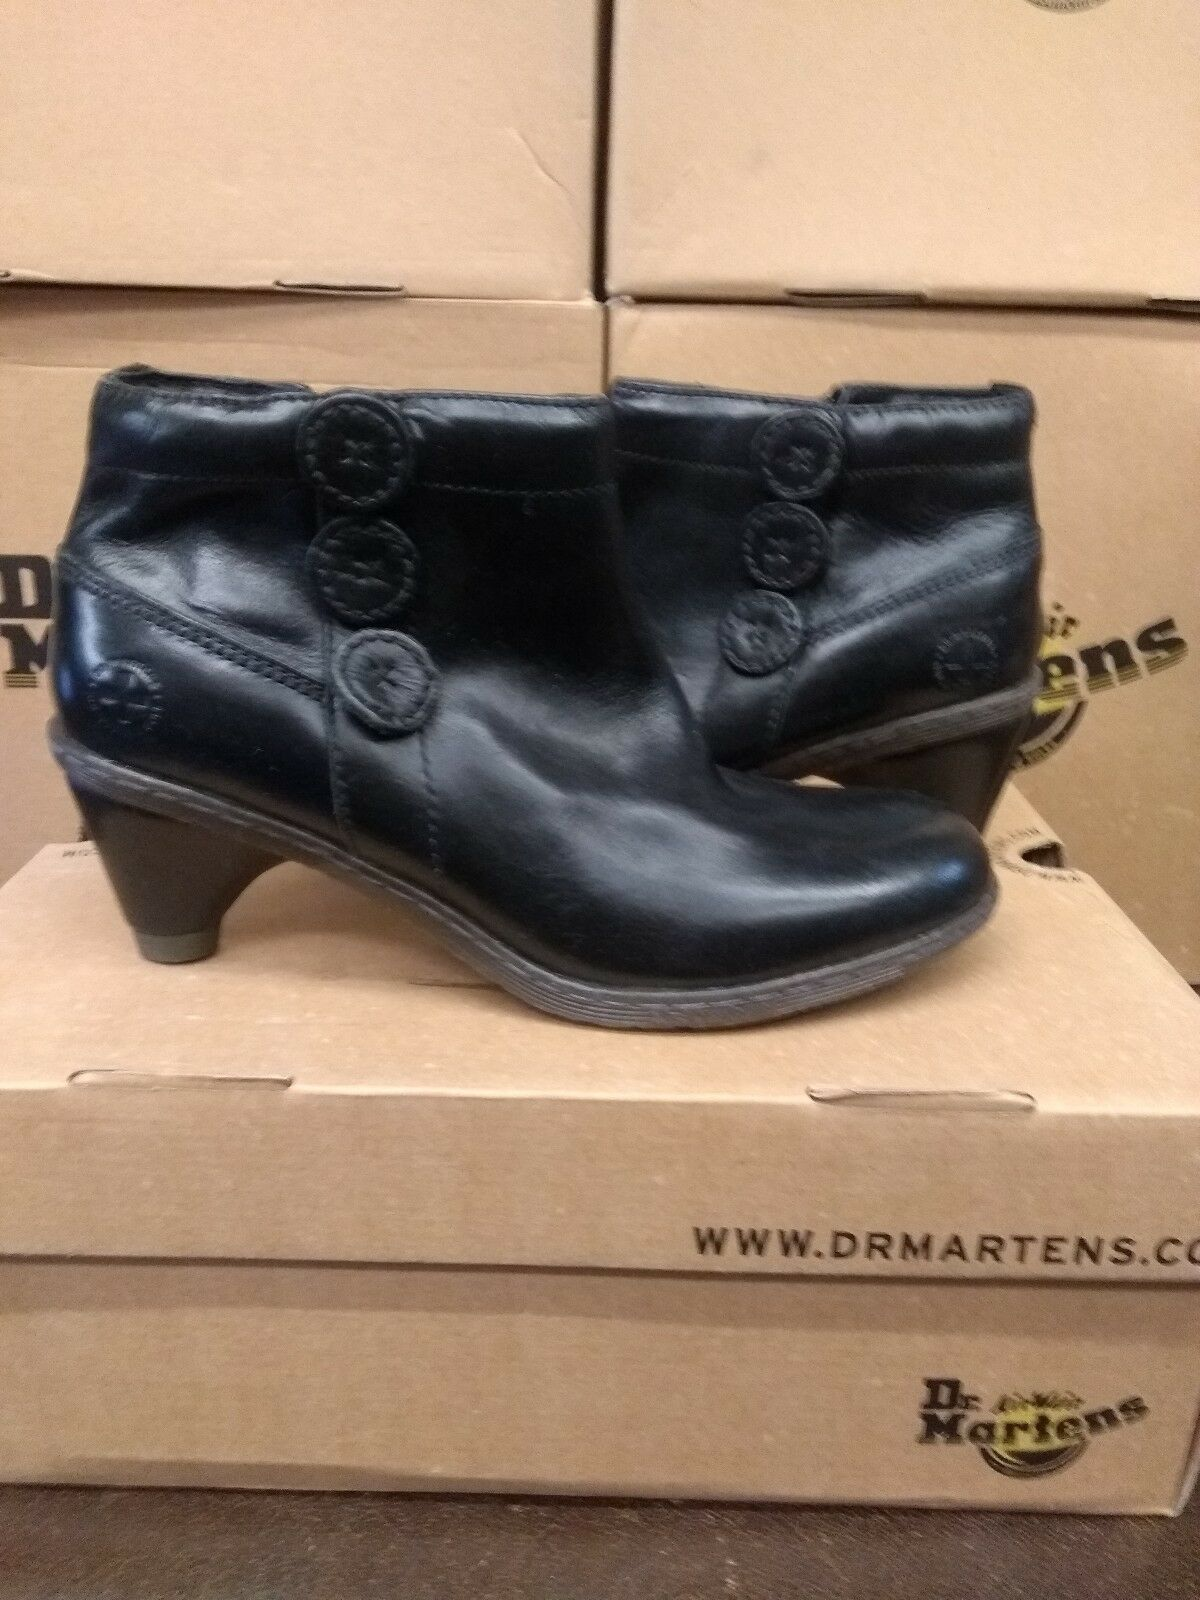 DR MARTENS 4 LADIES DIA BOOT SIZE 4 MARTENS 83db22